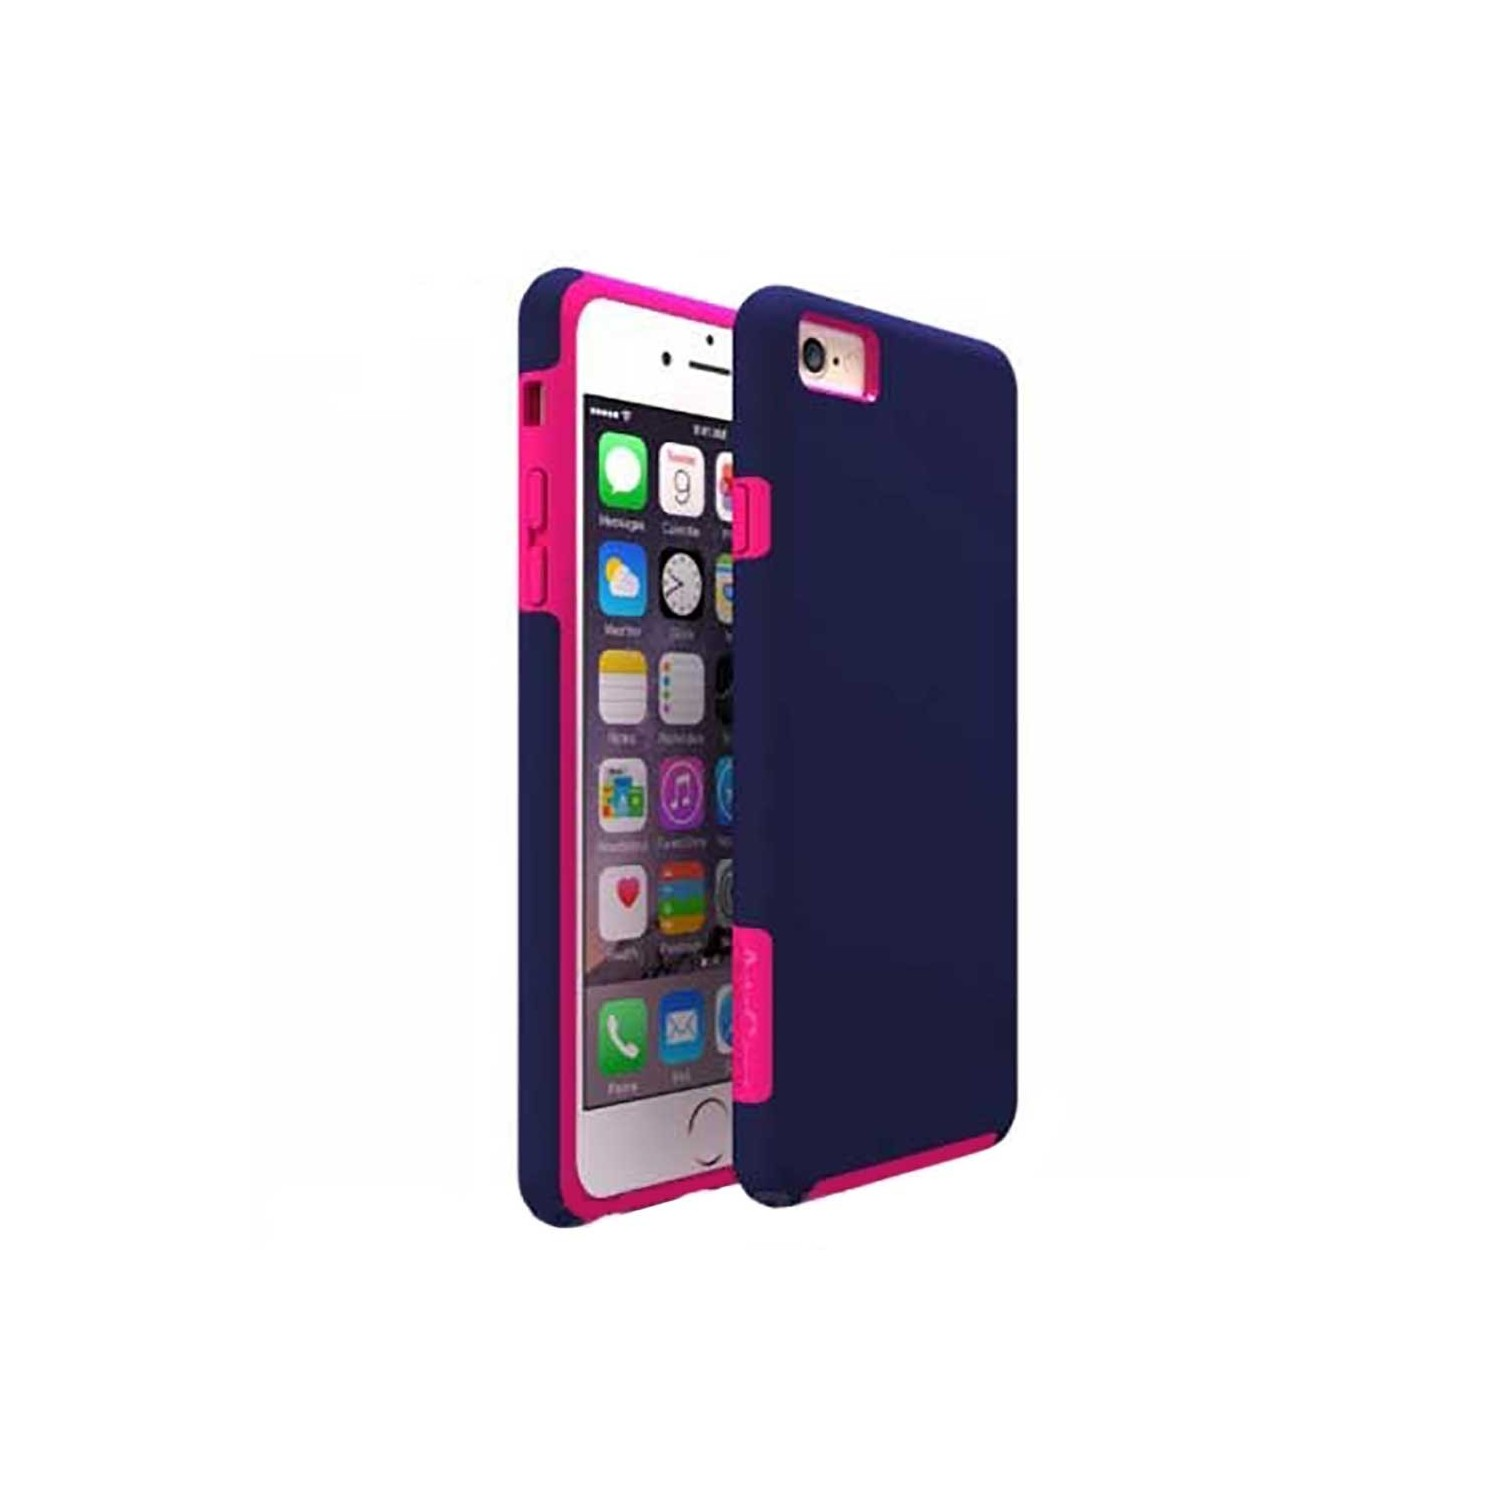 Case -  ArtsCase StrongFit for iPhone 6/6s Blue Navy